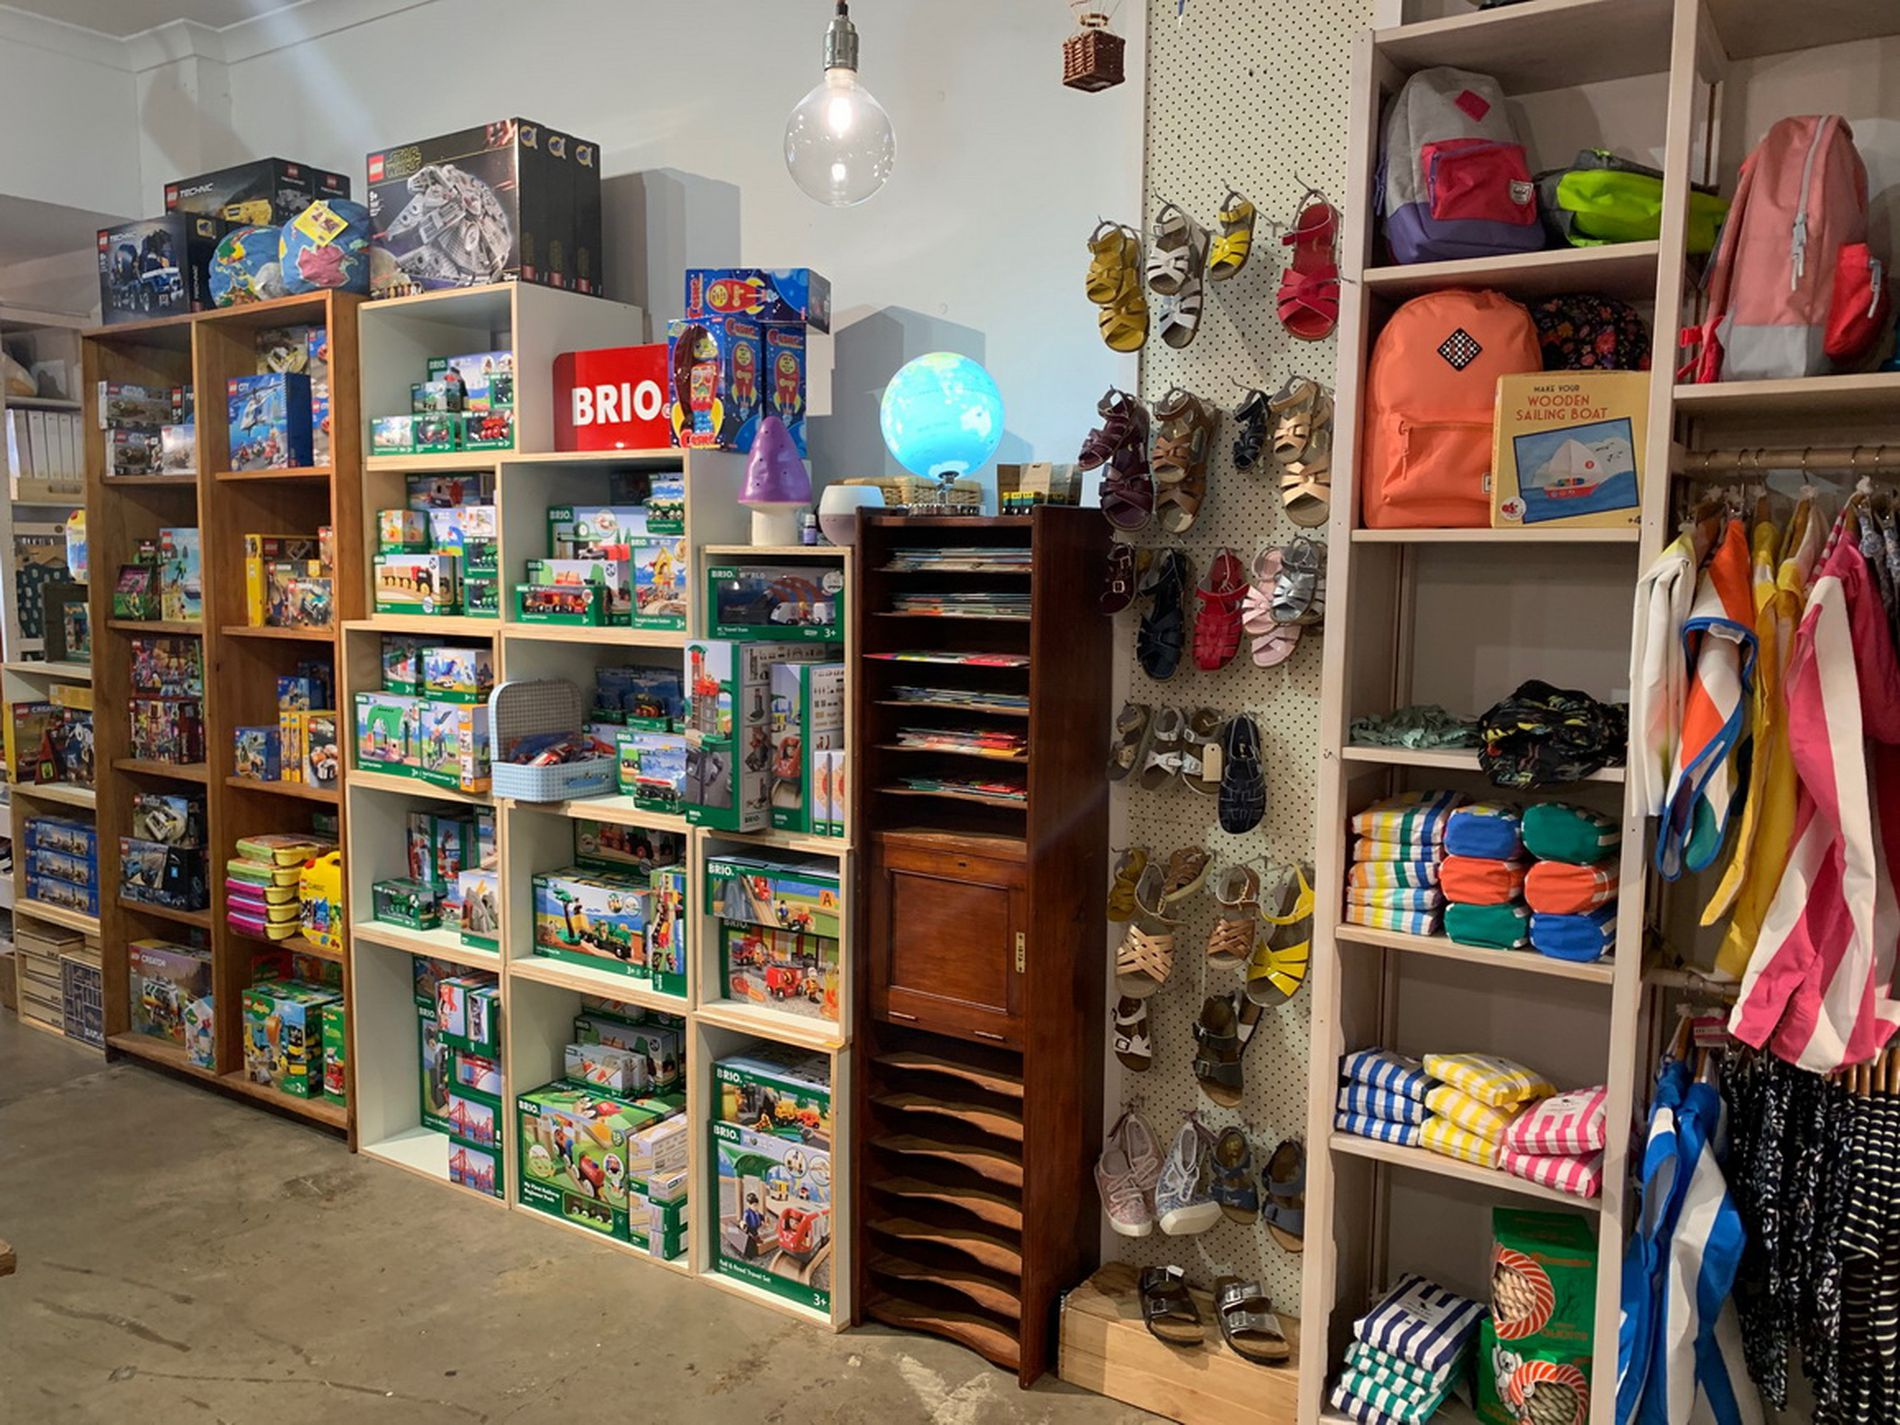 Online and Retail Business For Sale specialising in children's merchandise